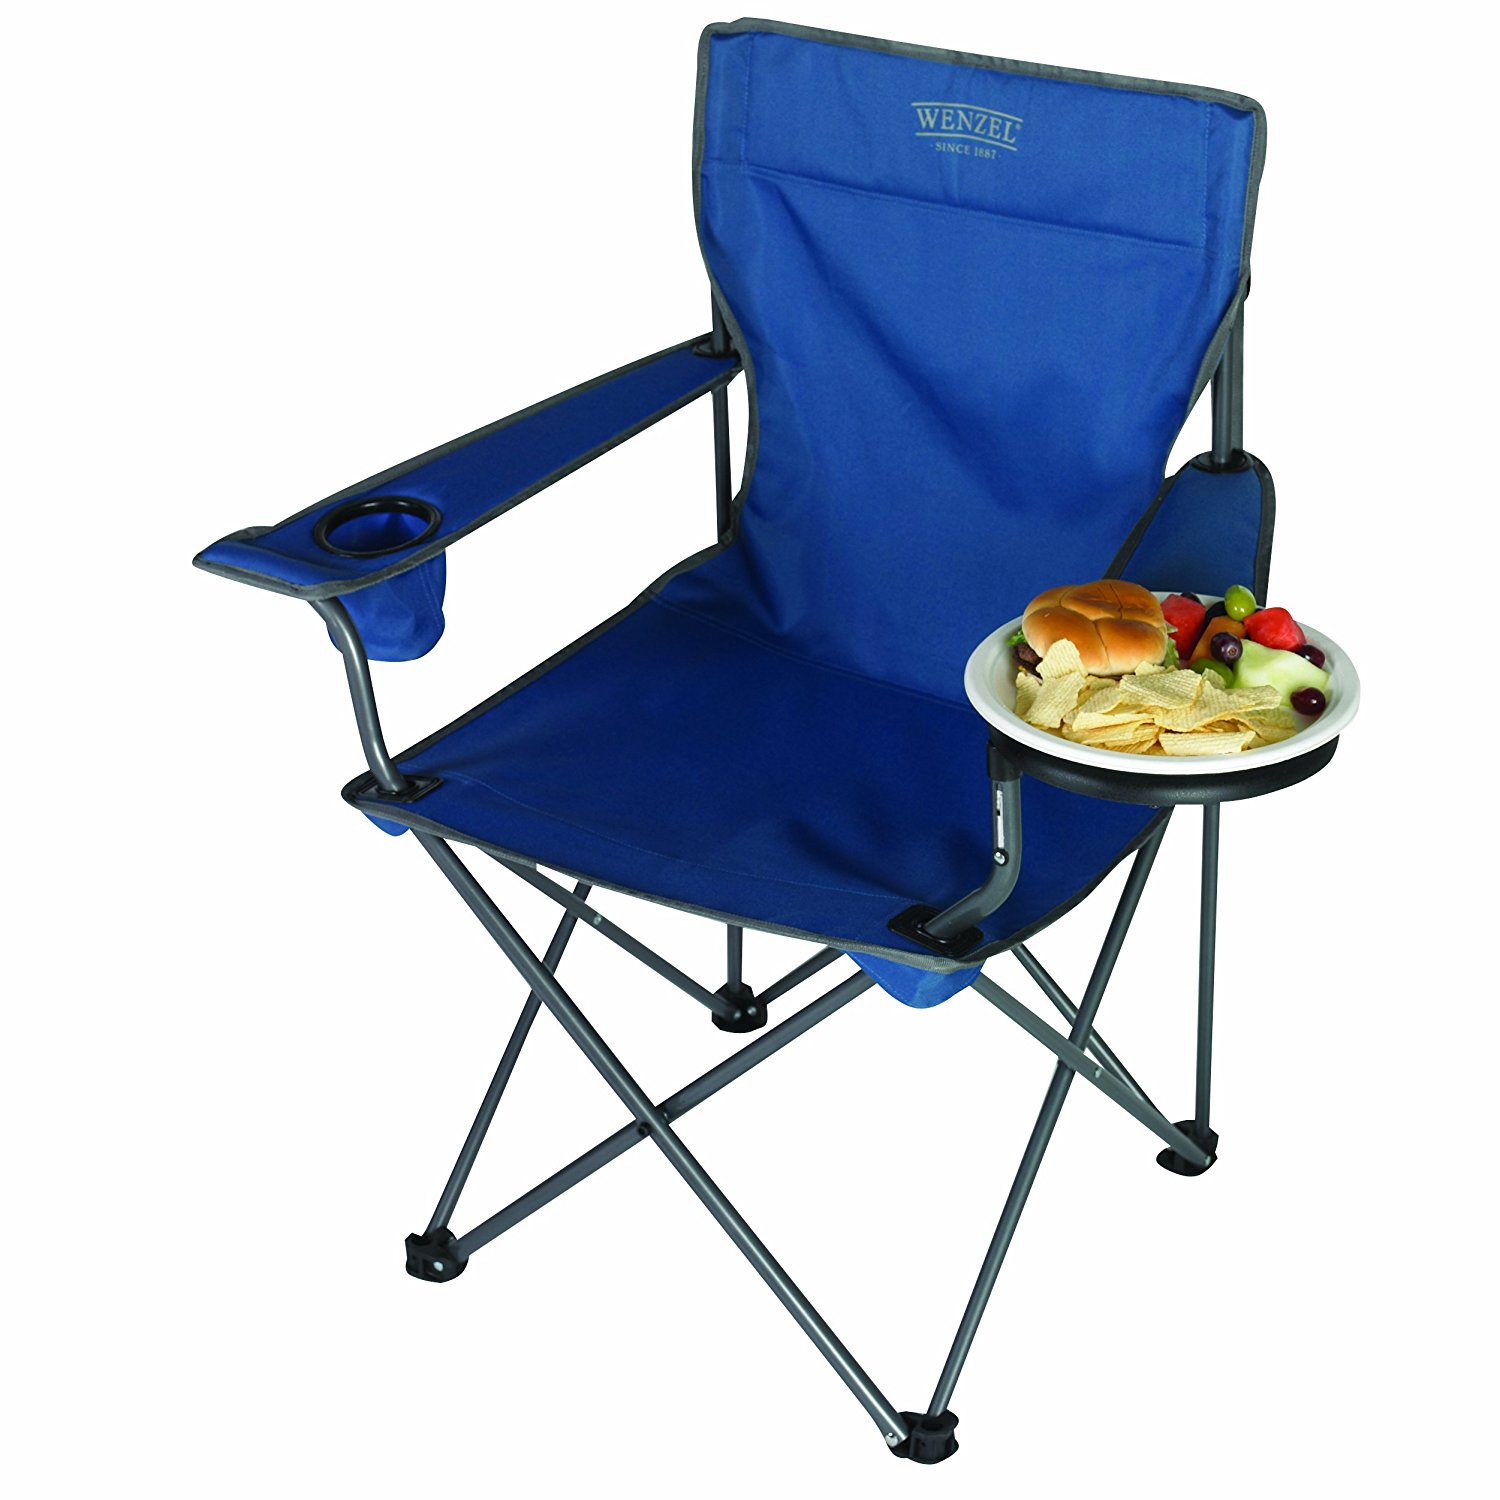 Superb Details About Wenzel 97942 Banquet Folding Camping Extra Large Chair Blue Ibusinesslaw Wood Chair Design Ideas Ibusinesslaworg